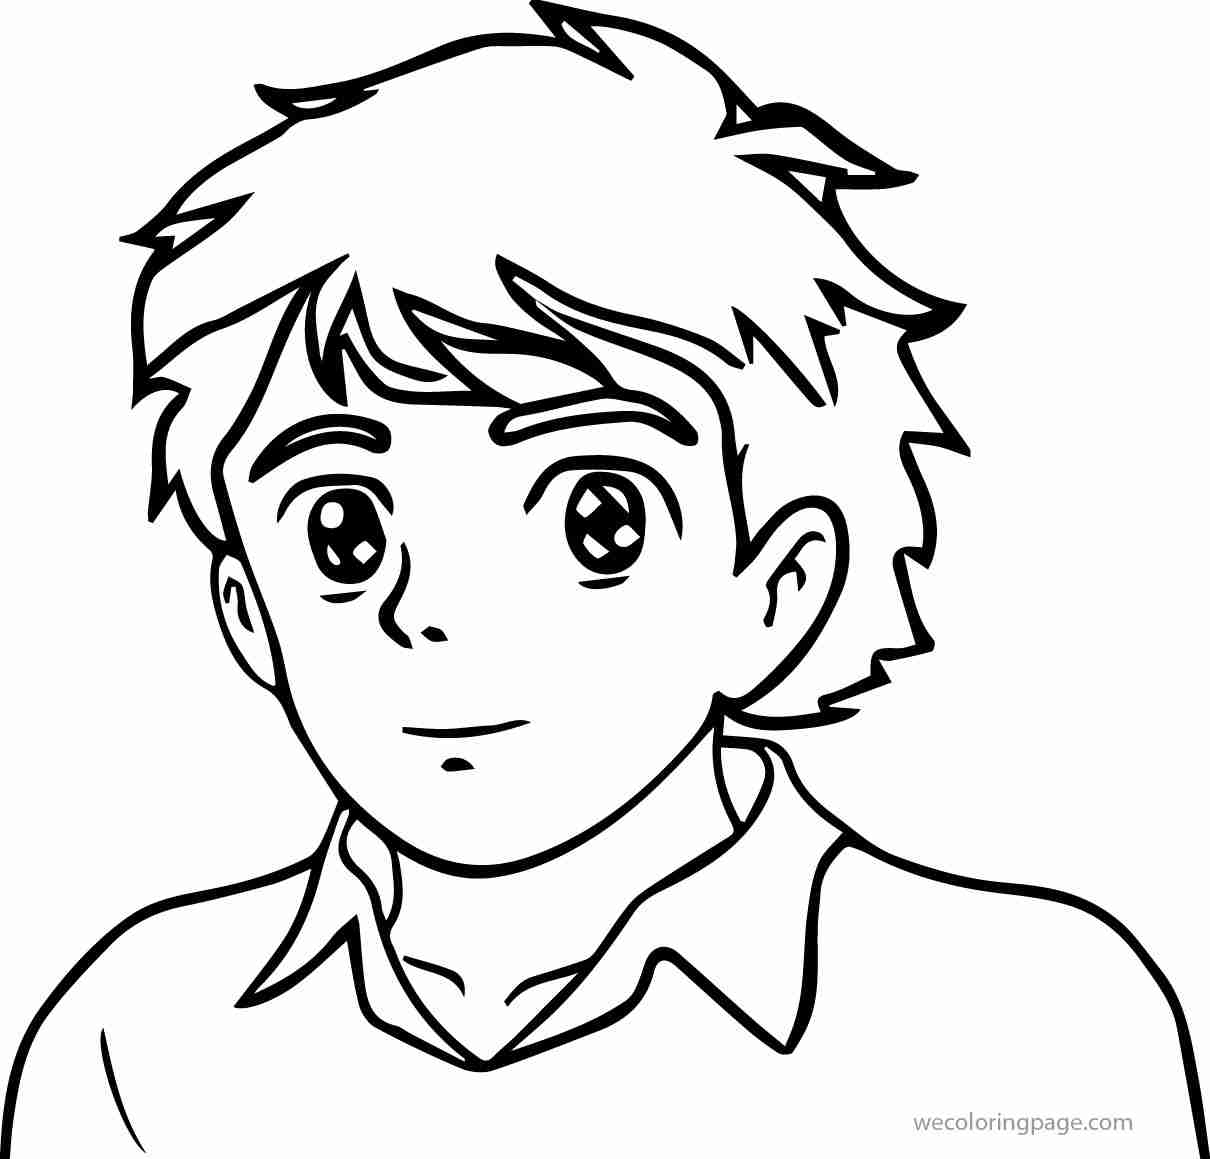 Person Coloring Page At Getdrawings Free Download